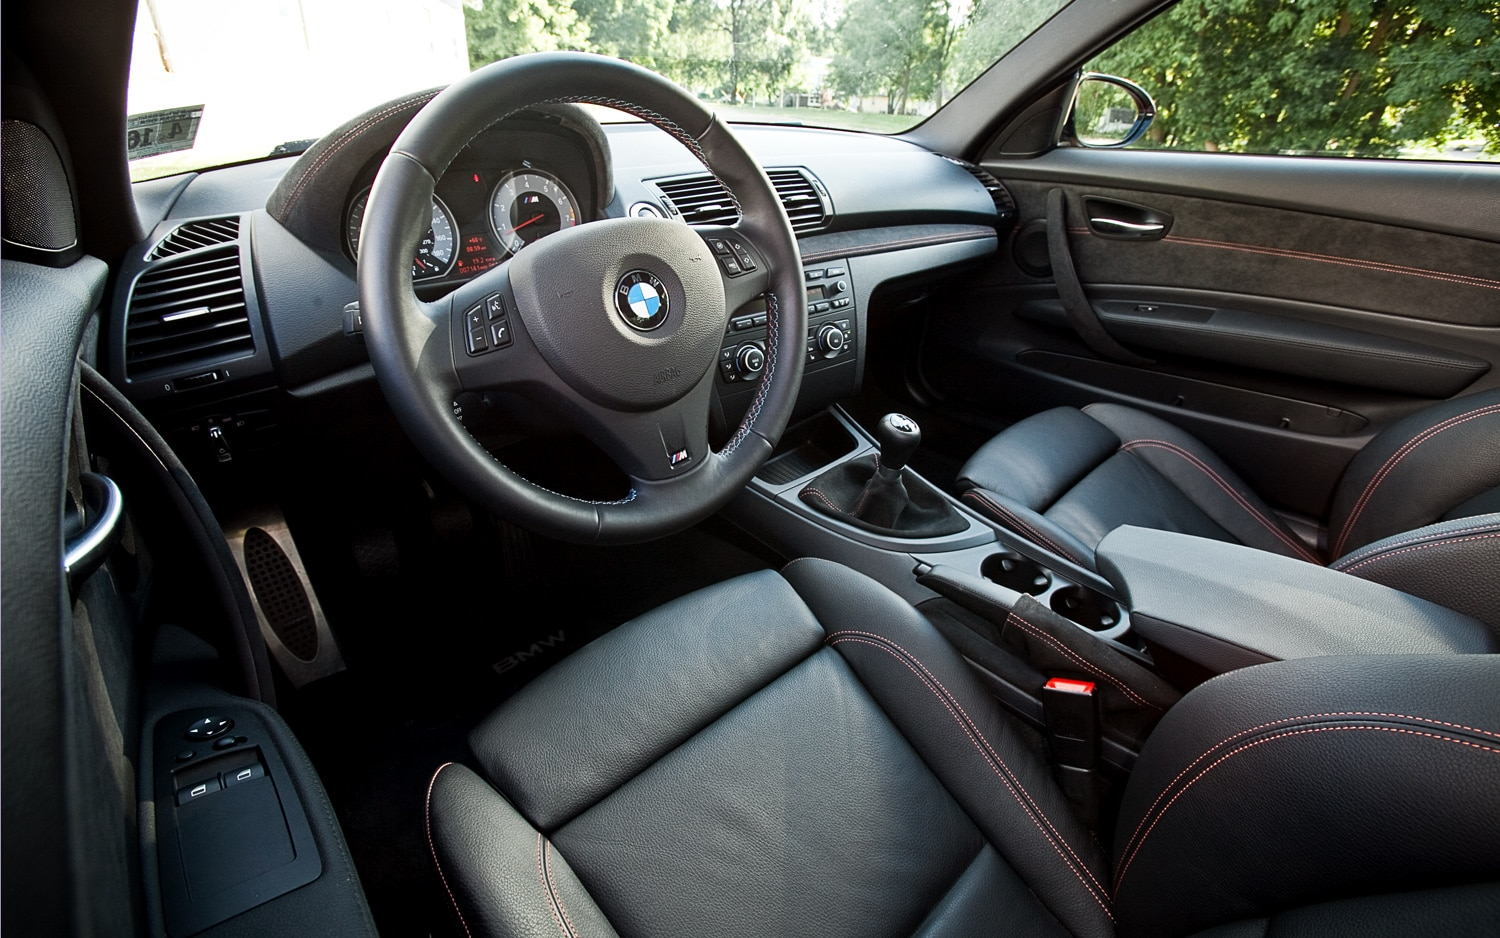 2012 BMW 1 Series M coupe  Editors Notebook  Automobile Magazine